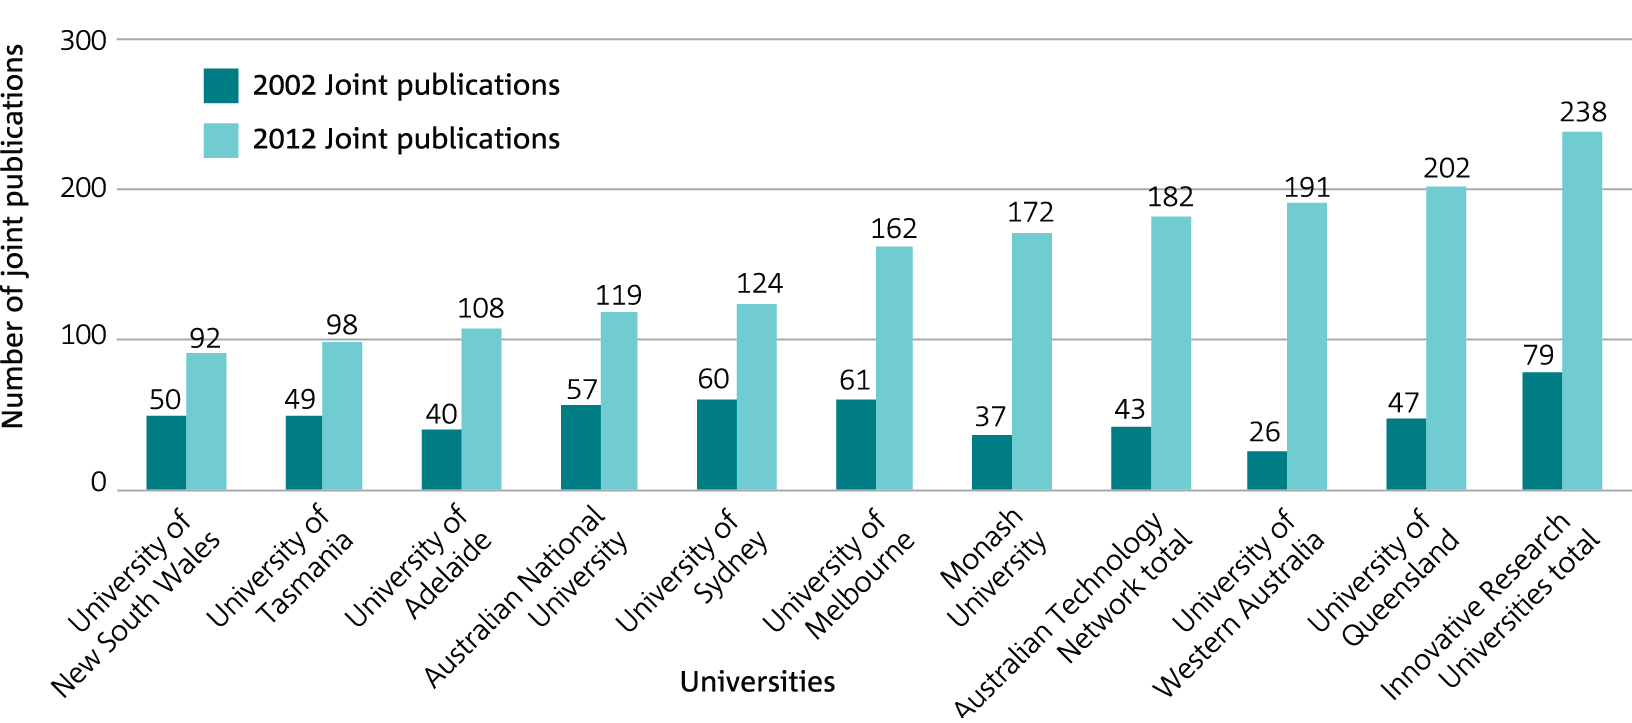 Graph of the number research publications jointly produced with key Australian Universities, comparing 2002 and 2012.